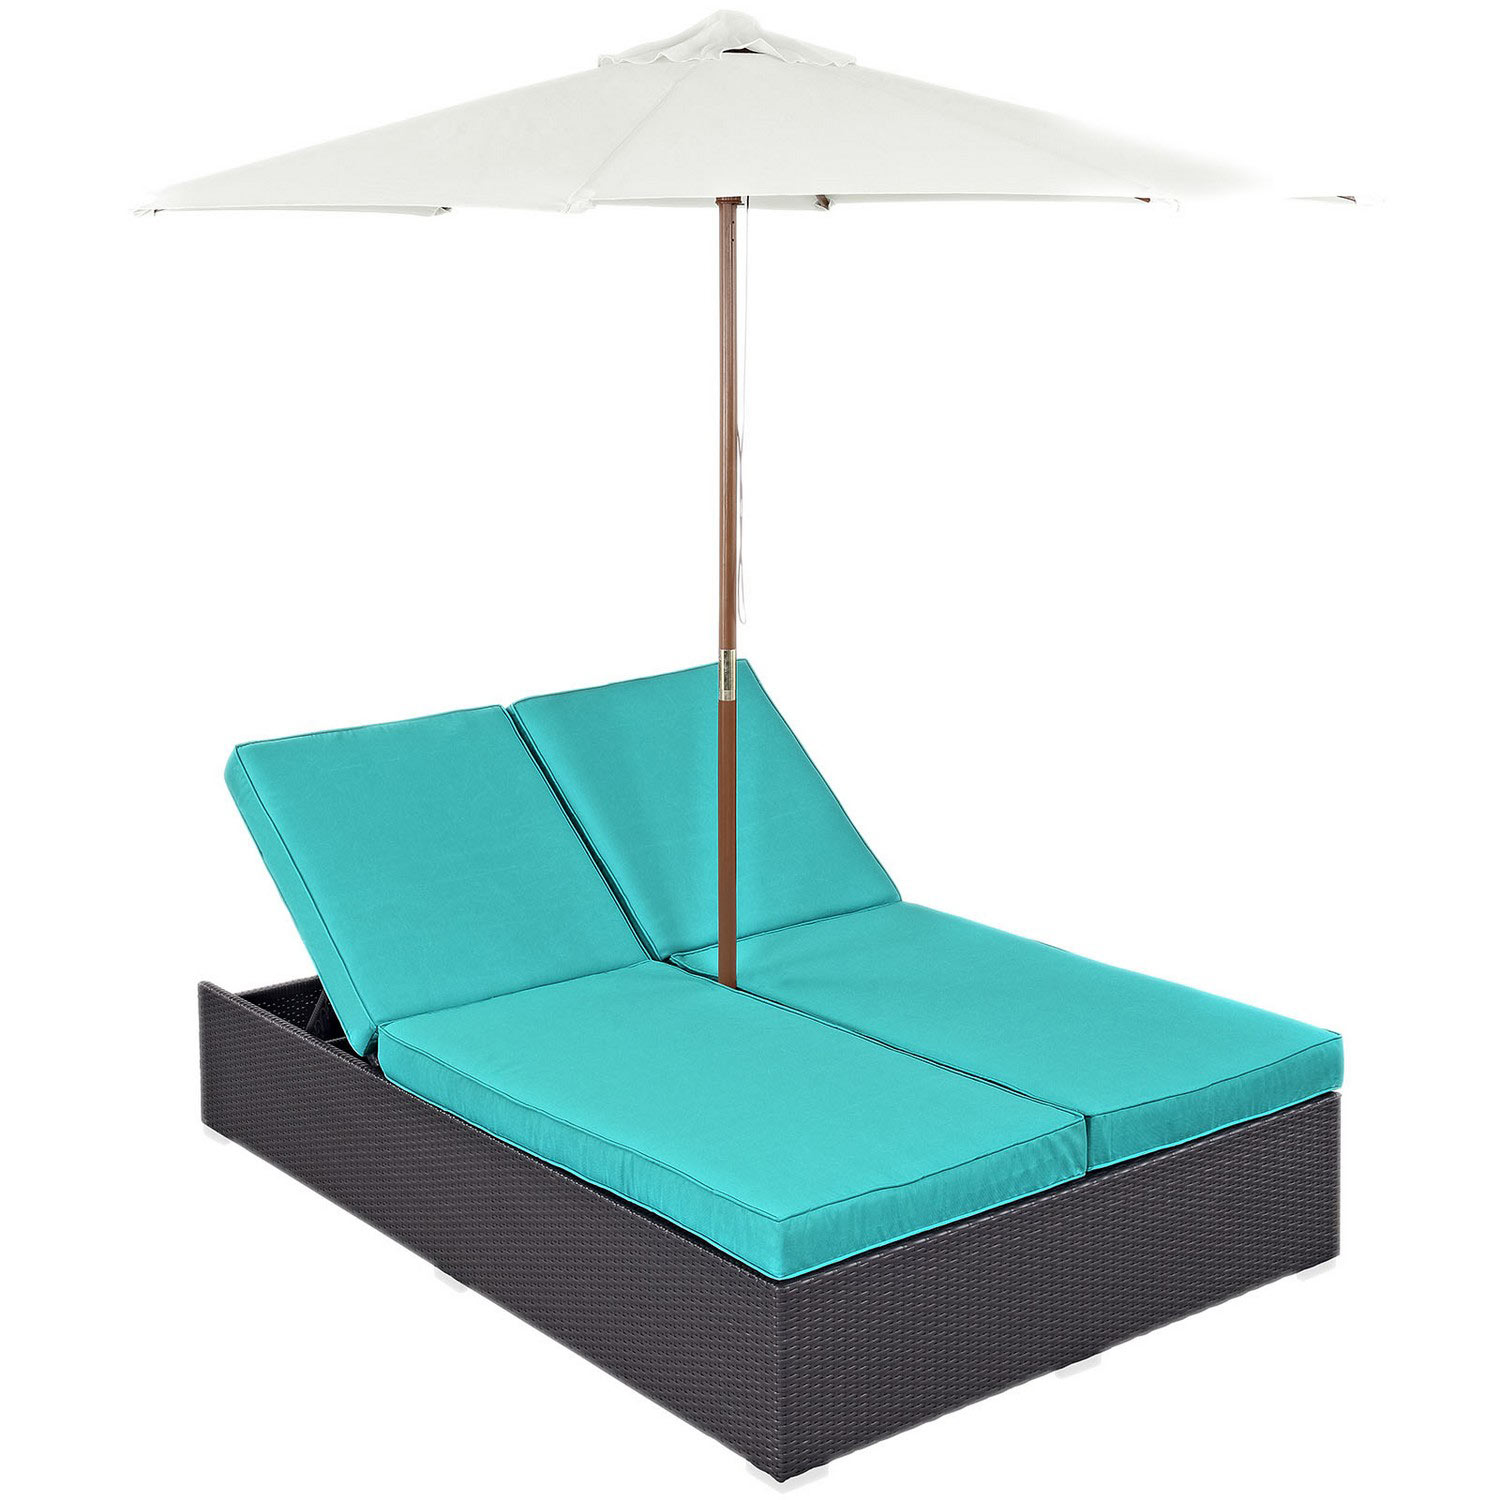 Modway Convene Double Outdoor Patio Chaise - Espresso Turquoise